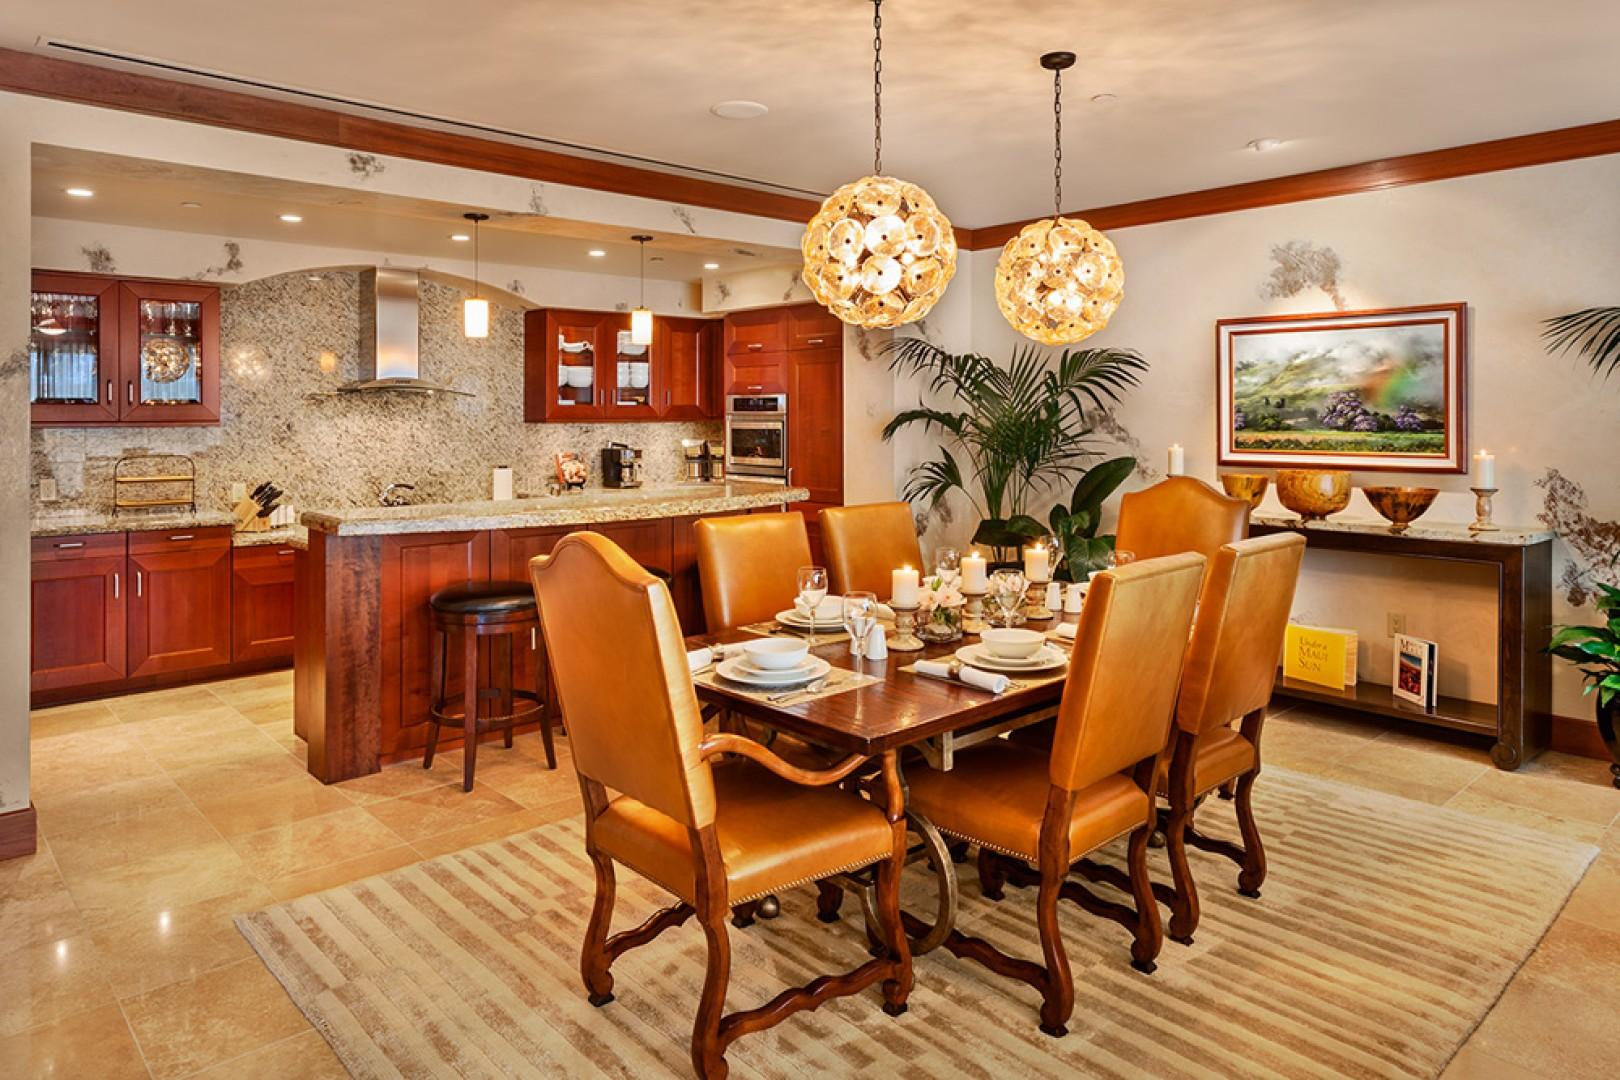 A201 Dining Table. This table seats 6 guests. Murano Glass Ceiling Chandeliers, Original Art, Pacific Rim and Tropical Artifacts, Gallery-Quality Decor